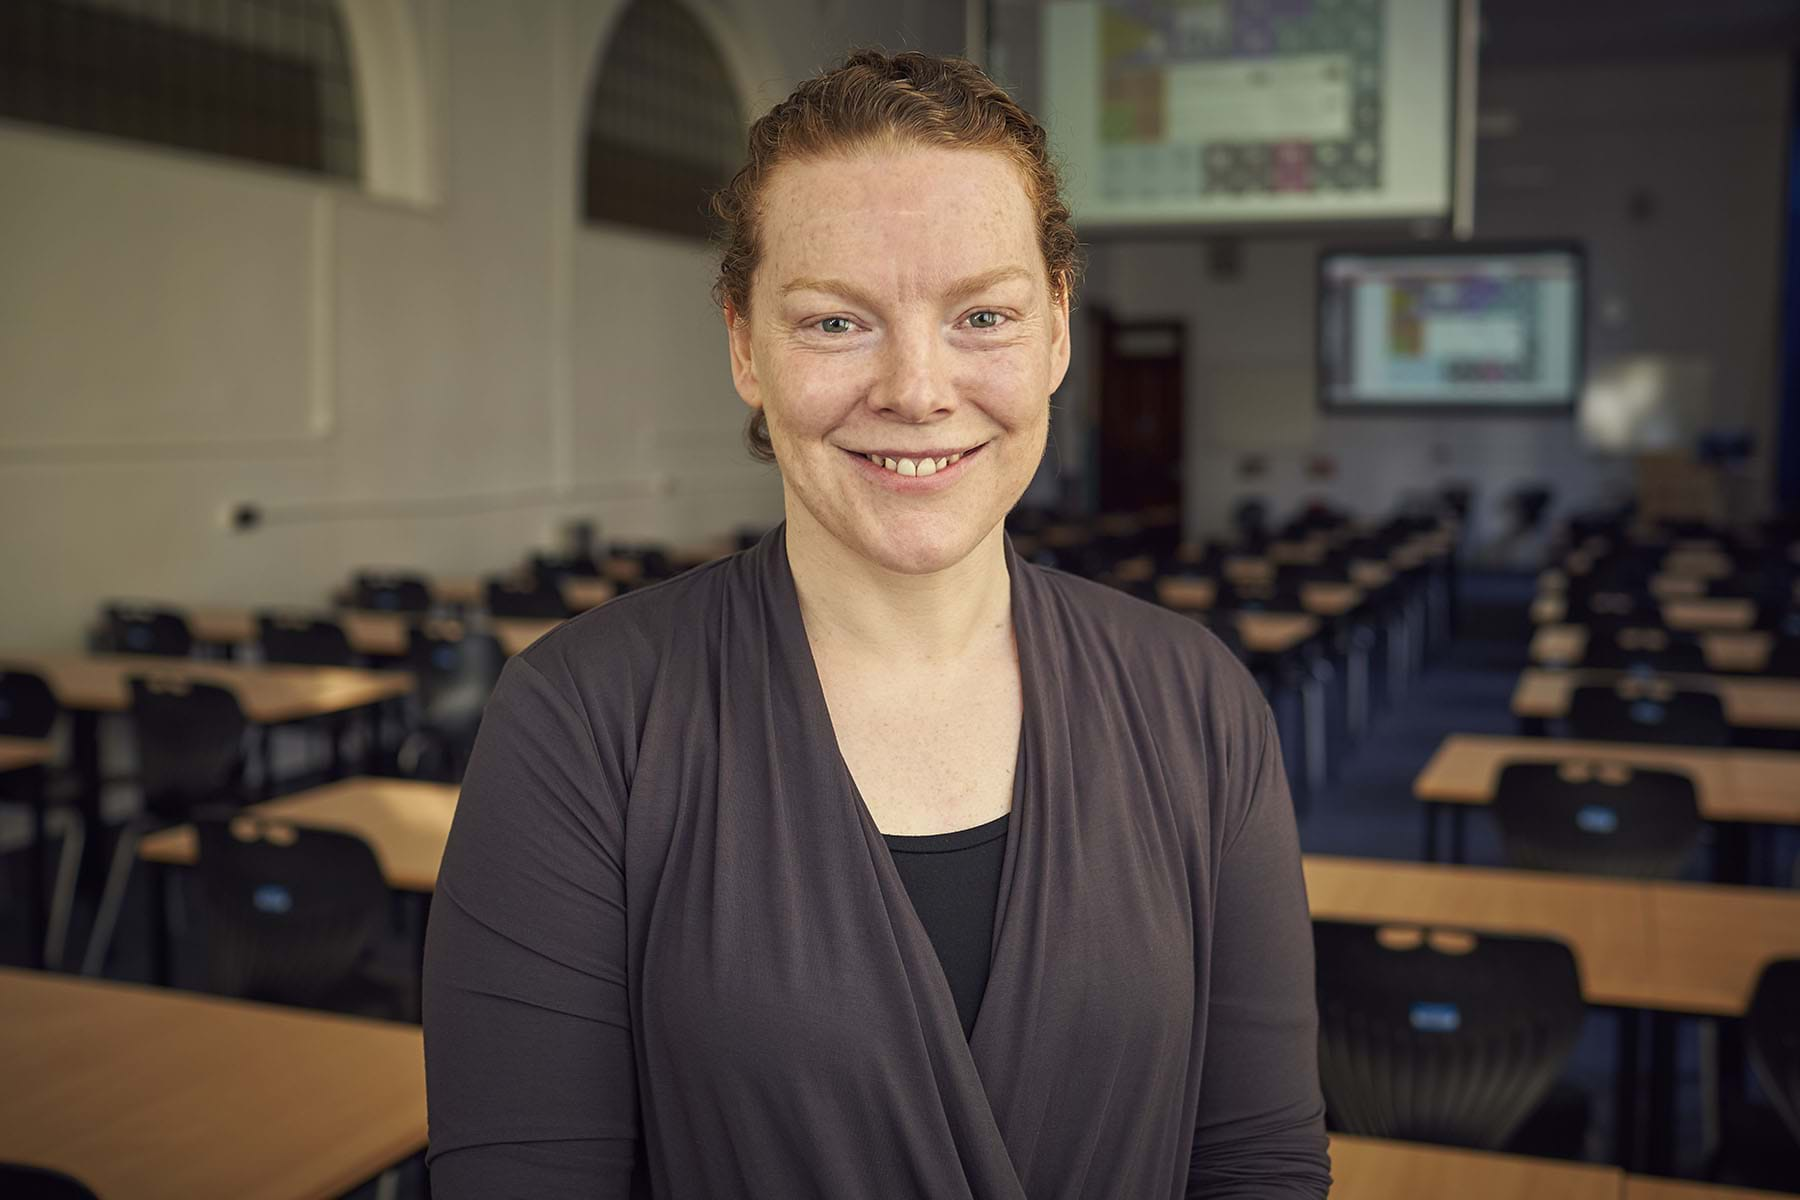 A picture of Professor Ruth Falconer smiling